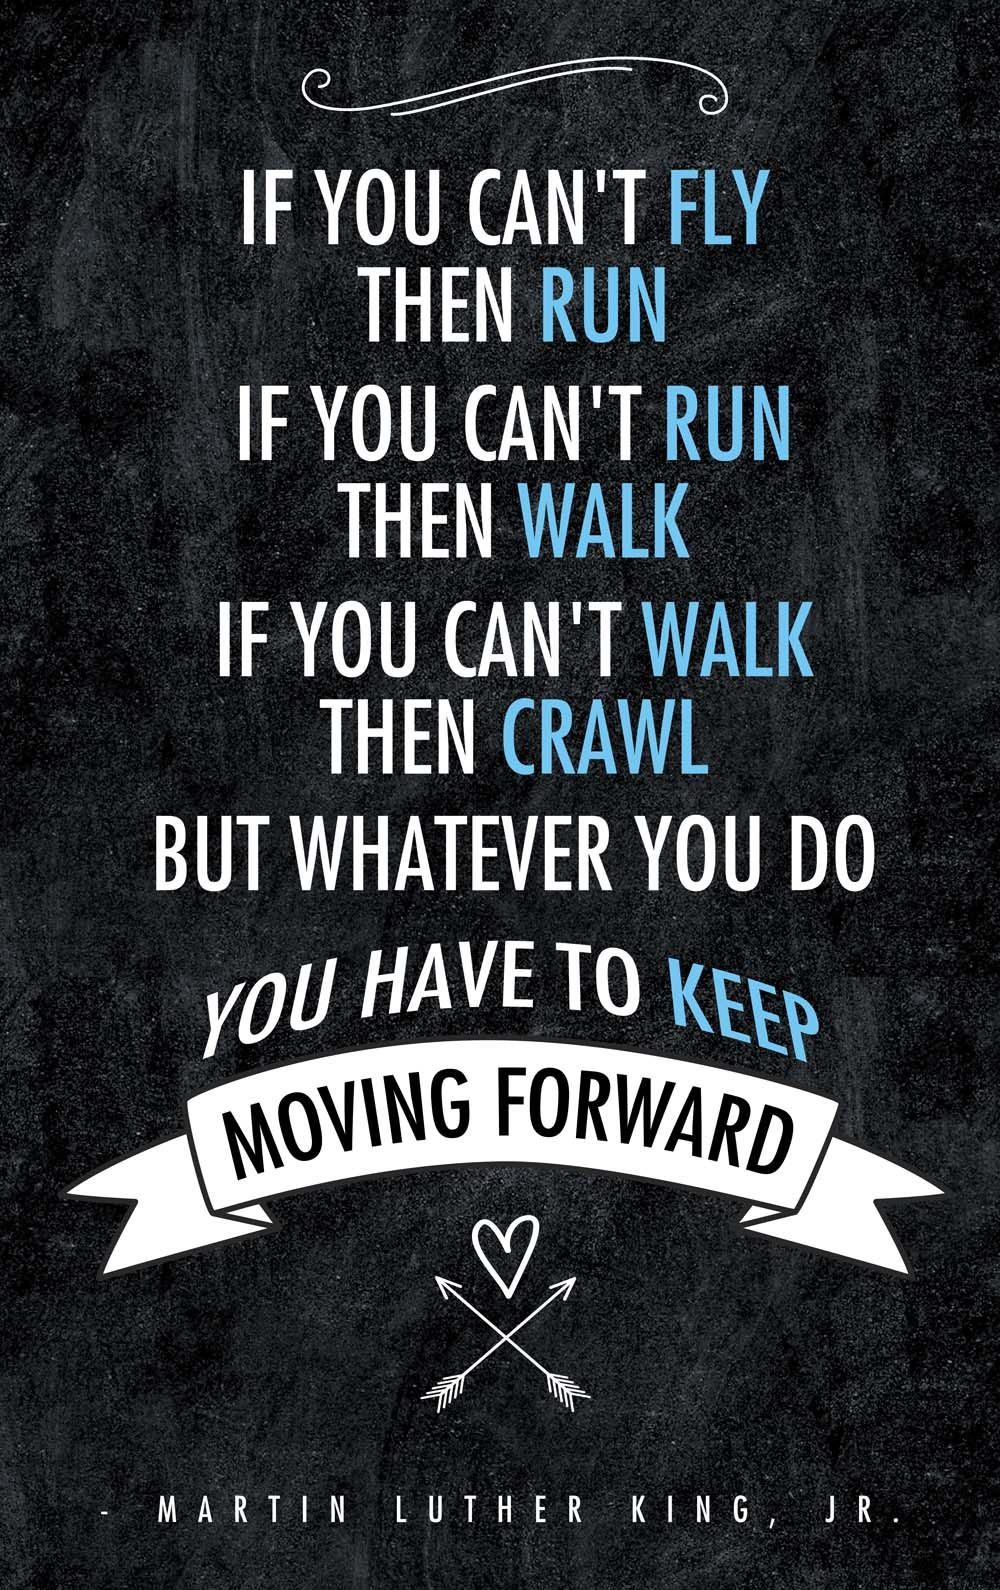 Keep Moving Forward Quote Martinlutherking Keep Moving Forward Quotes Inspirational Quotes Moving Forward Quotes